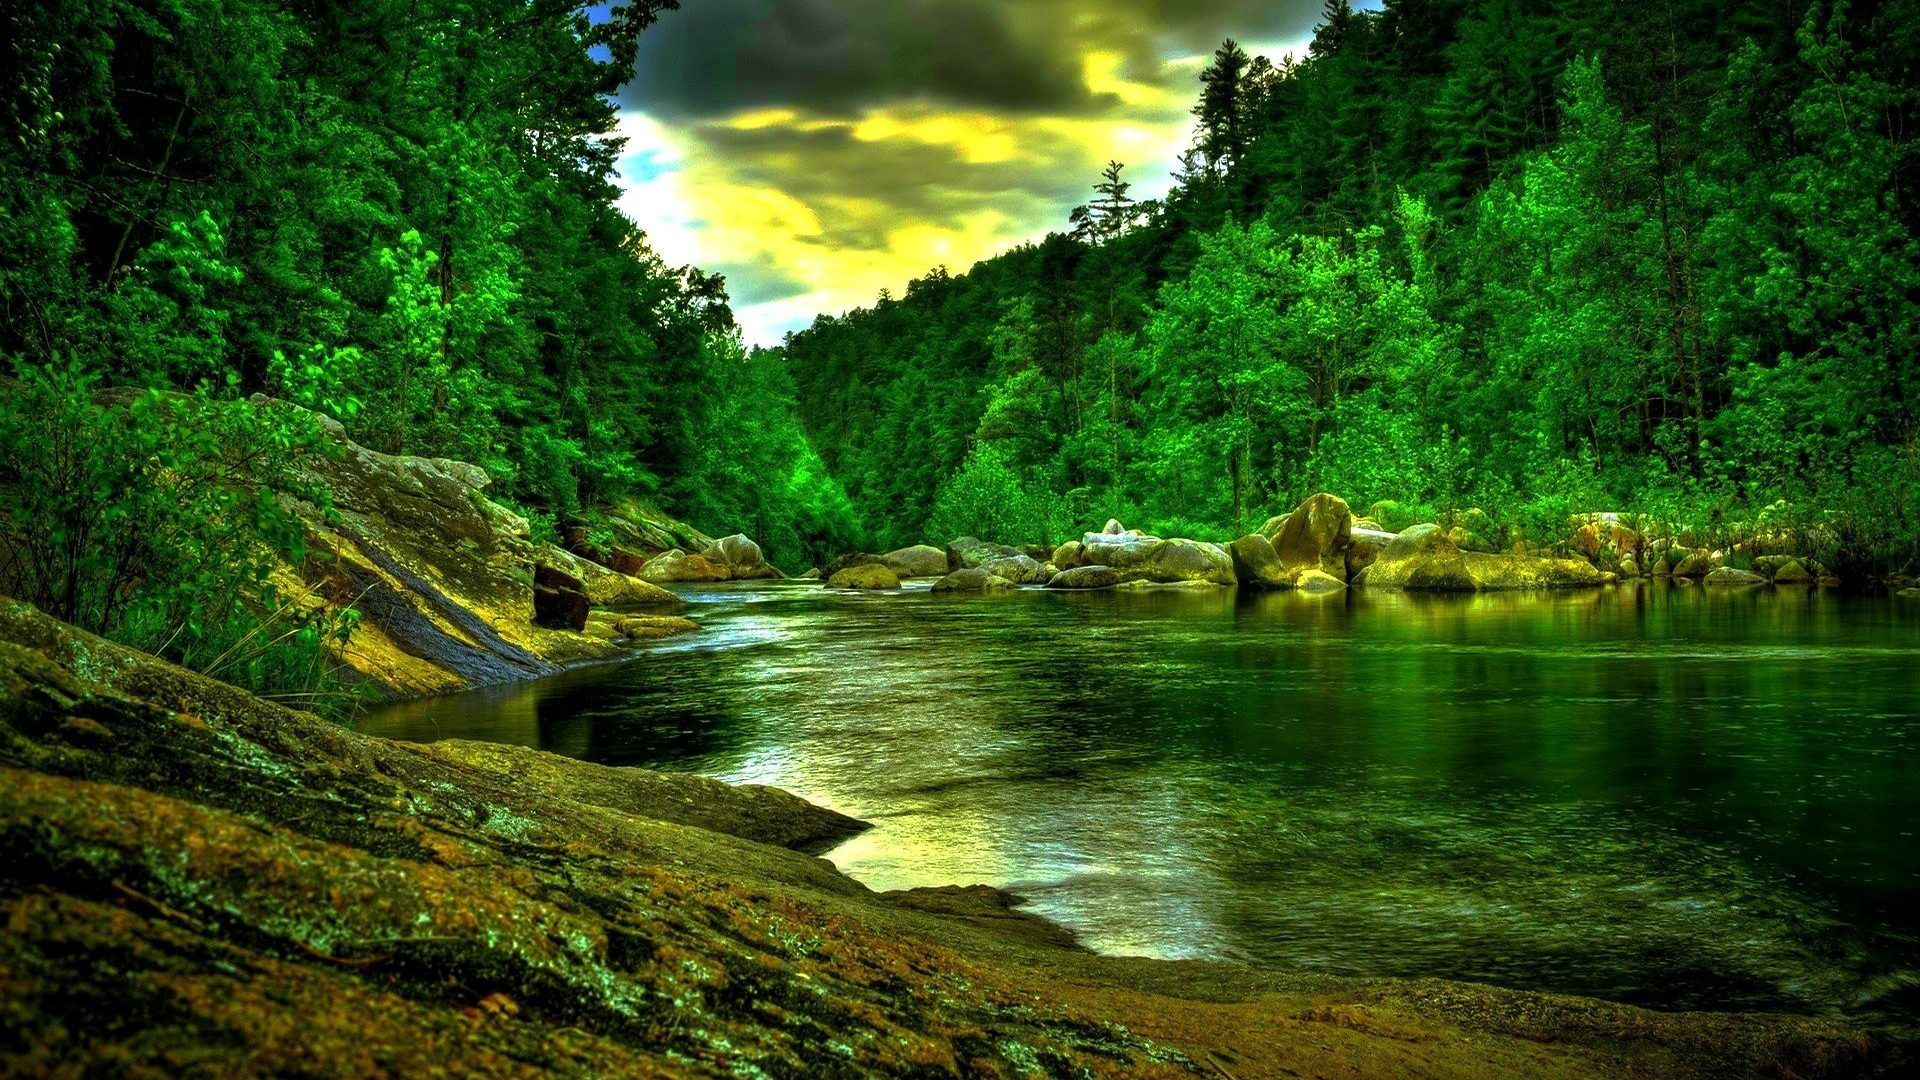 Nature Amazon Pictures Wallpapers Desktop Wallpaper Hd Full Screen Nature Nature Desktop Wallpaper Hd Nature Wallpapers Nature Pictures